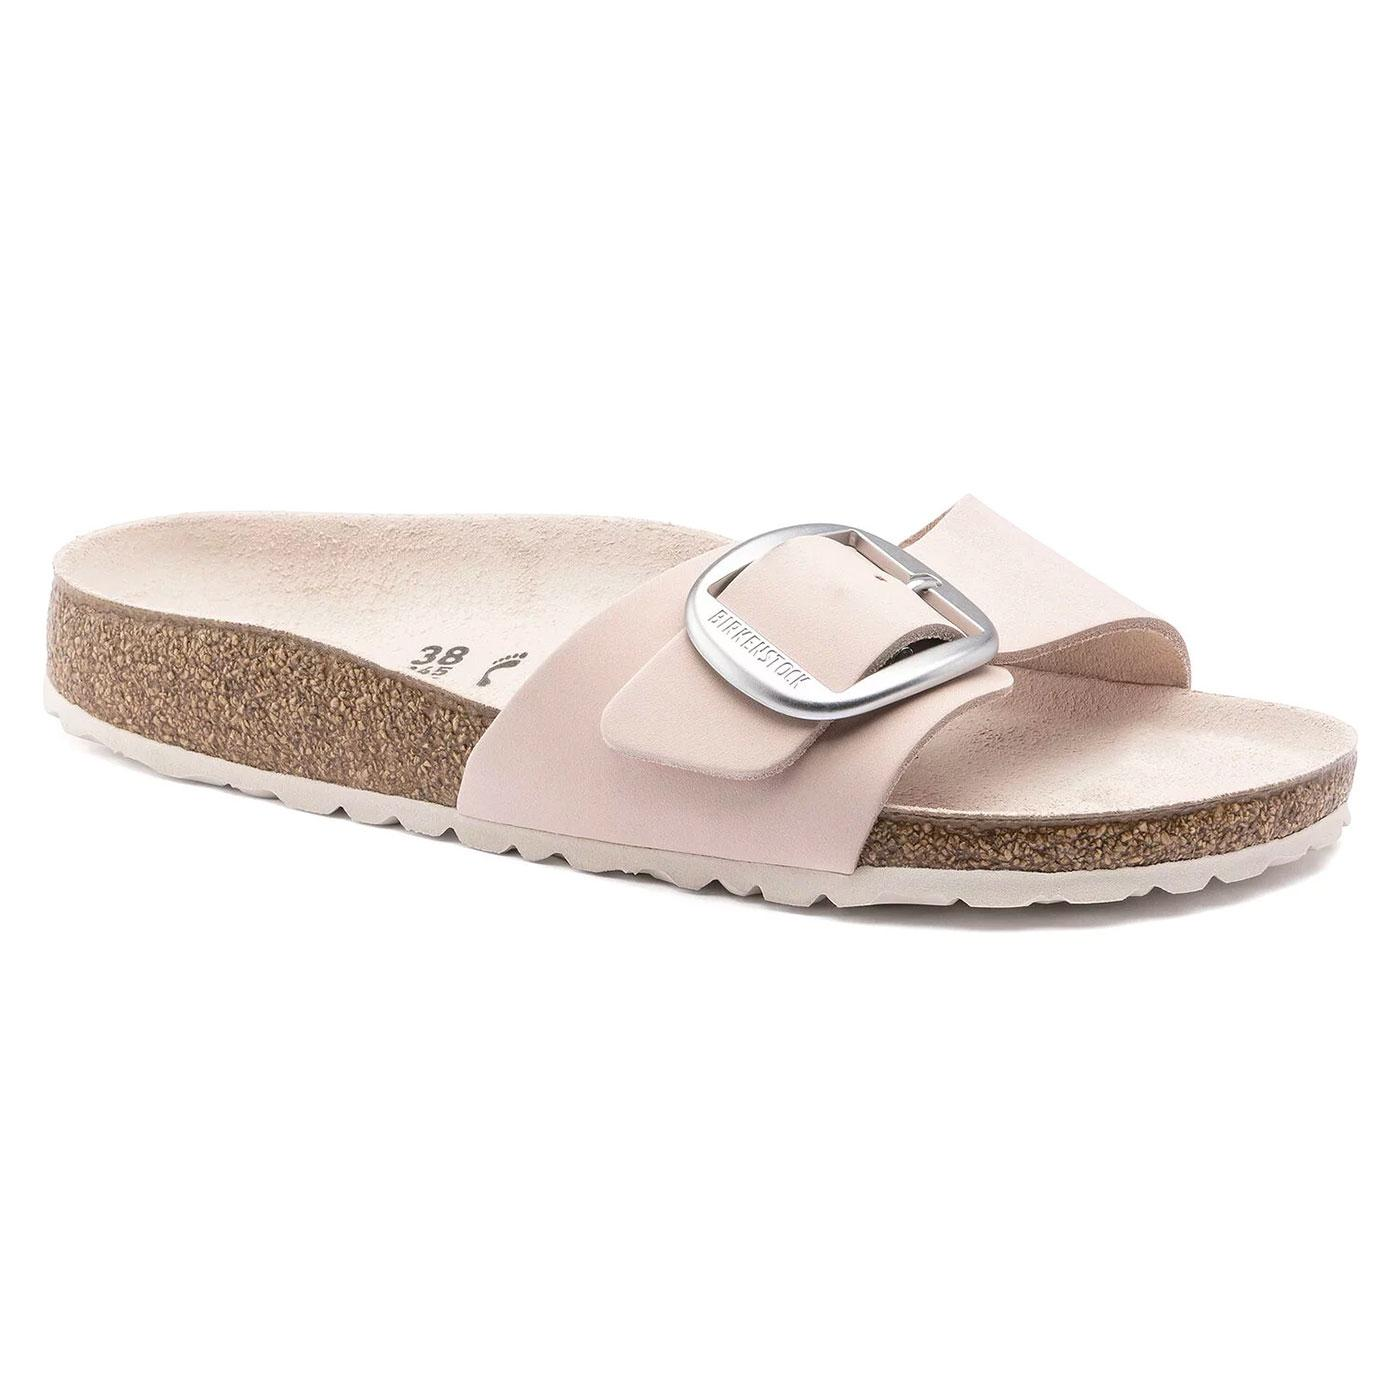 Madrid Big Buckle BIRKENSTOCK Sandals (Light Rose)